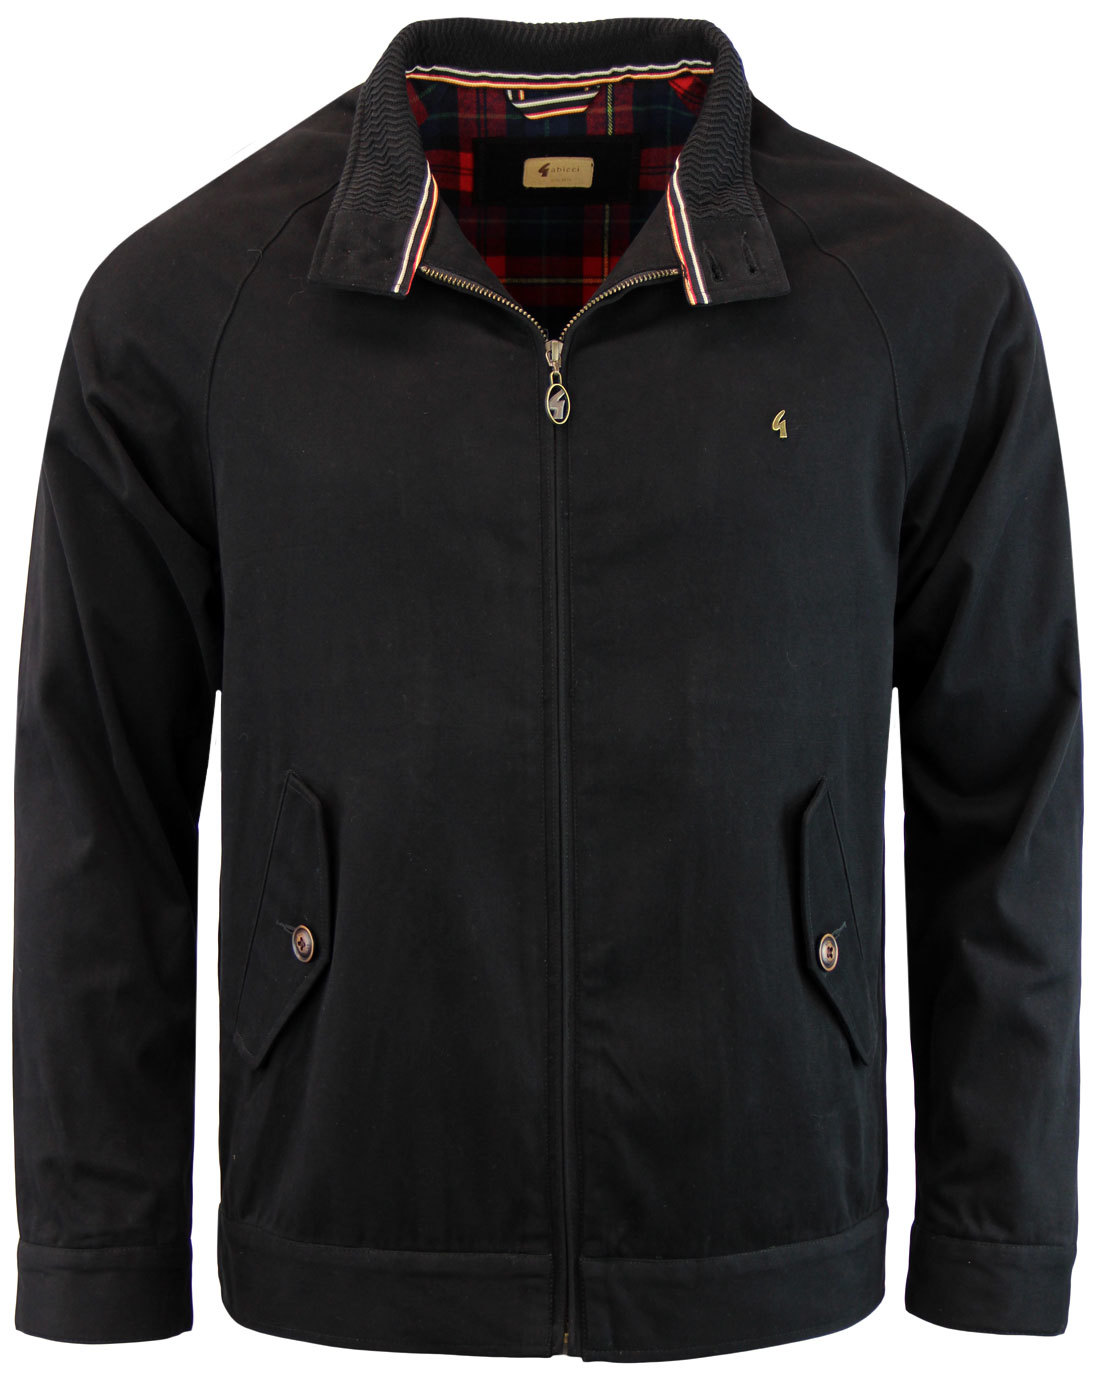 GABICCI VINTAGE Retro Mod Black Harrington Jacket